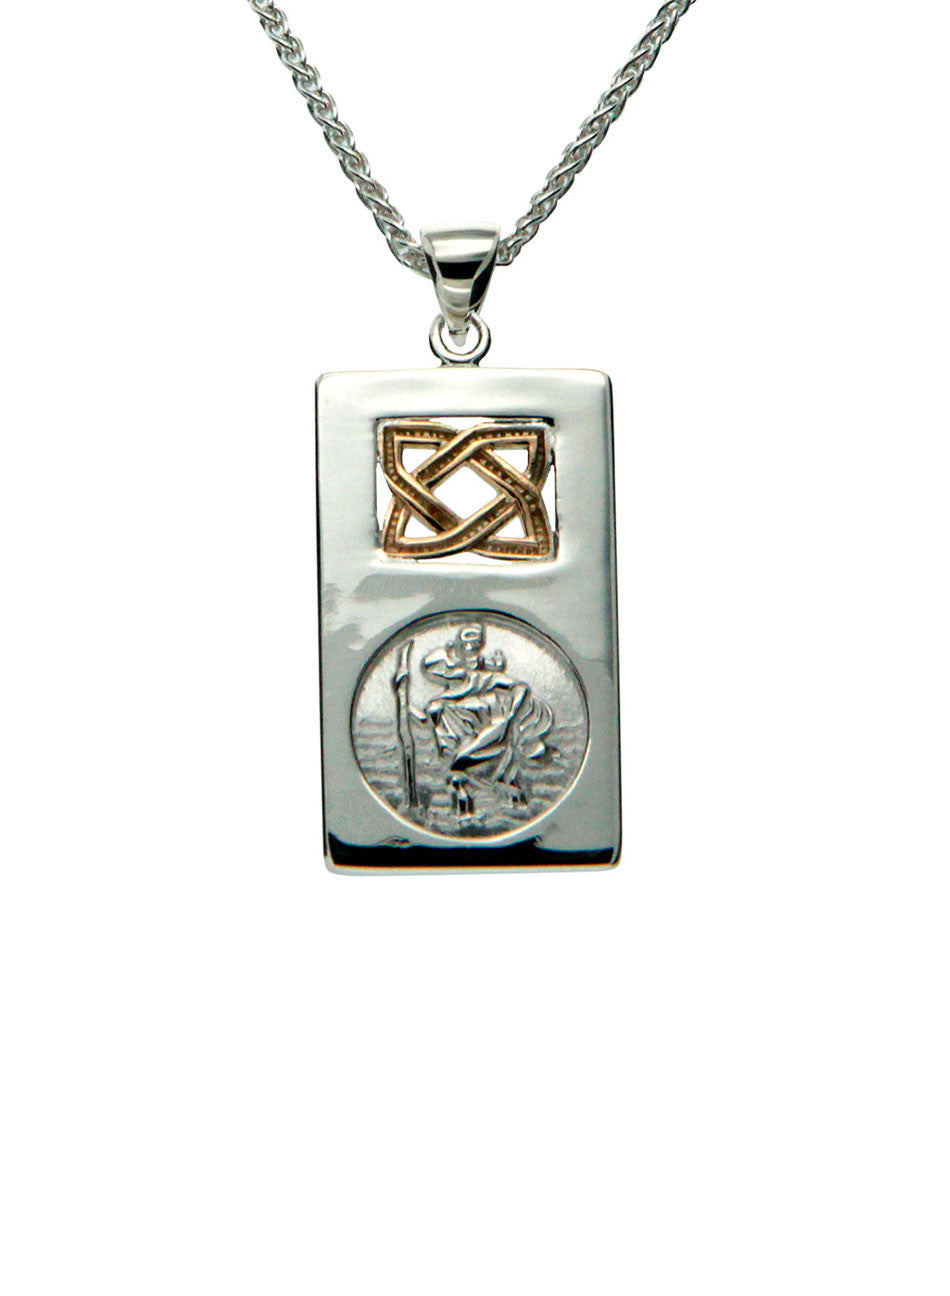 Saint Christopher Pendant - Sterling Silver & 10k Gold - Small